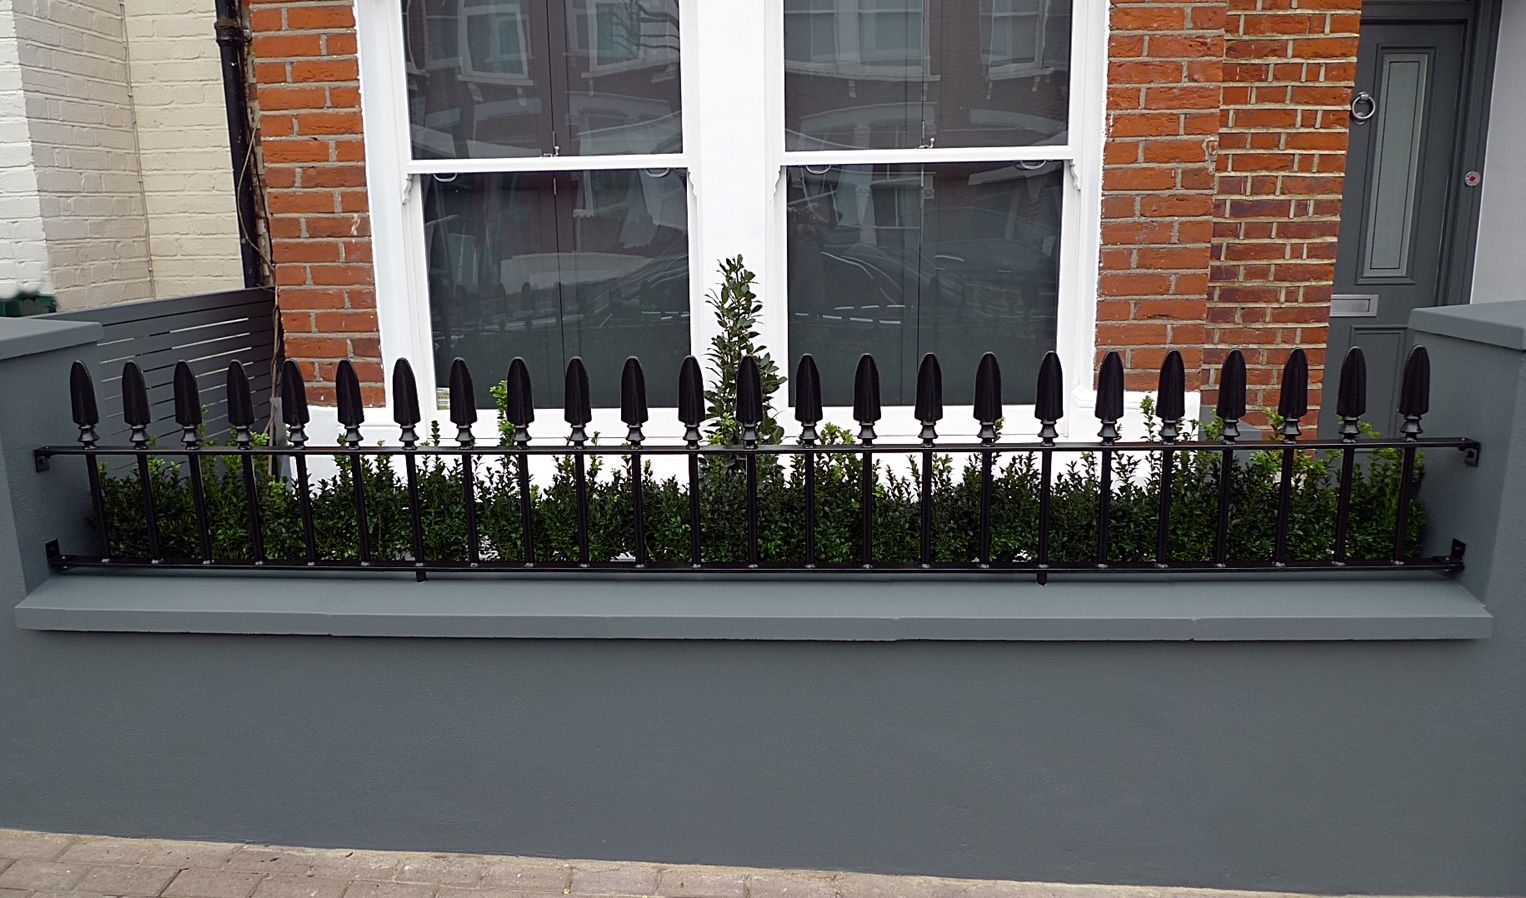 Wrought Metal Rail Gate Grey Walls Cap Coping